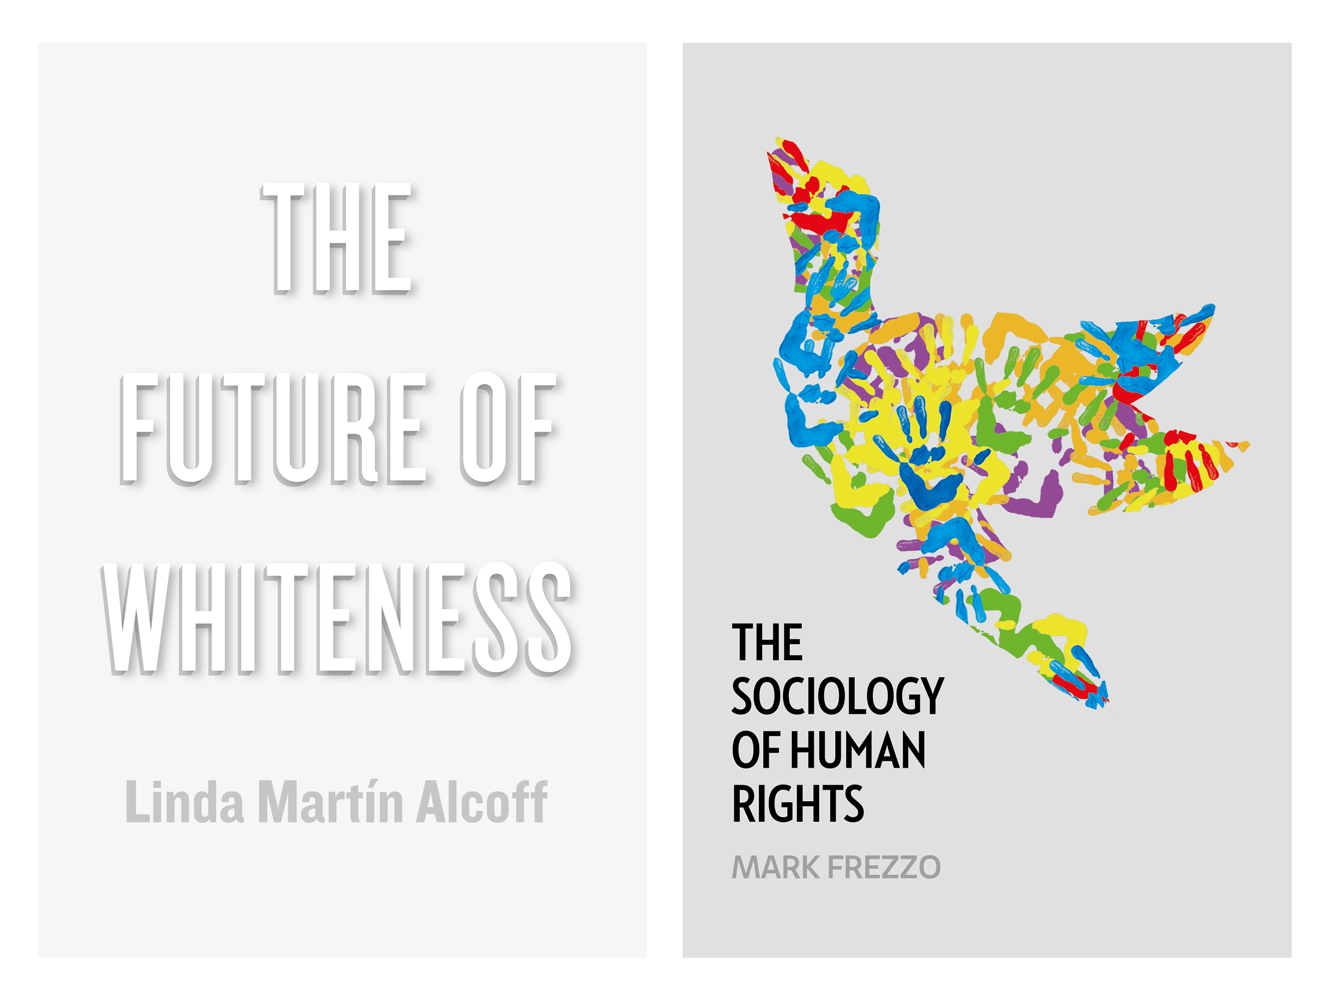 Book Cover Design For The Future Of Whiteness And The Sociology Of Human Rights By Polity Books. Designed By &&& Creative